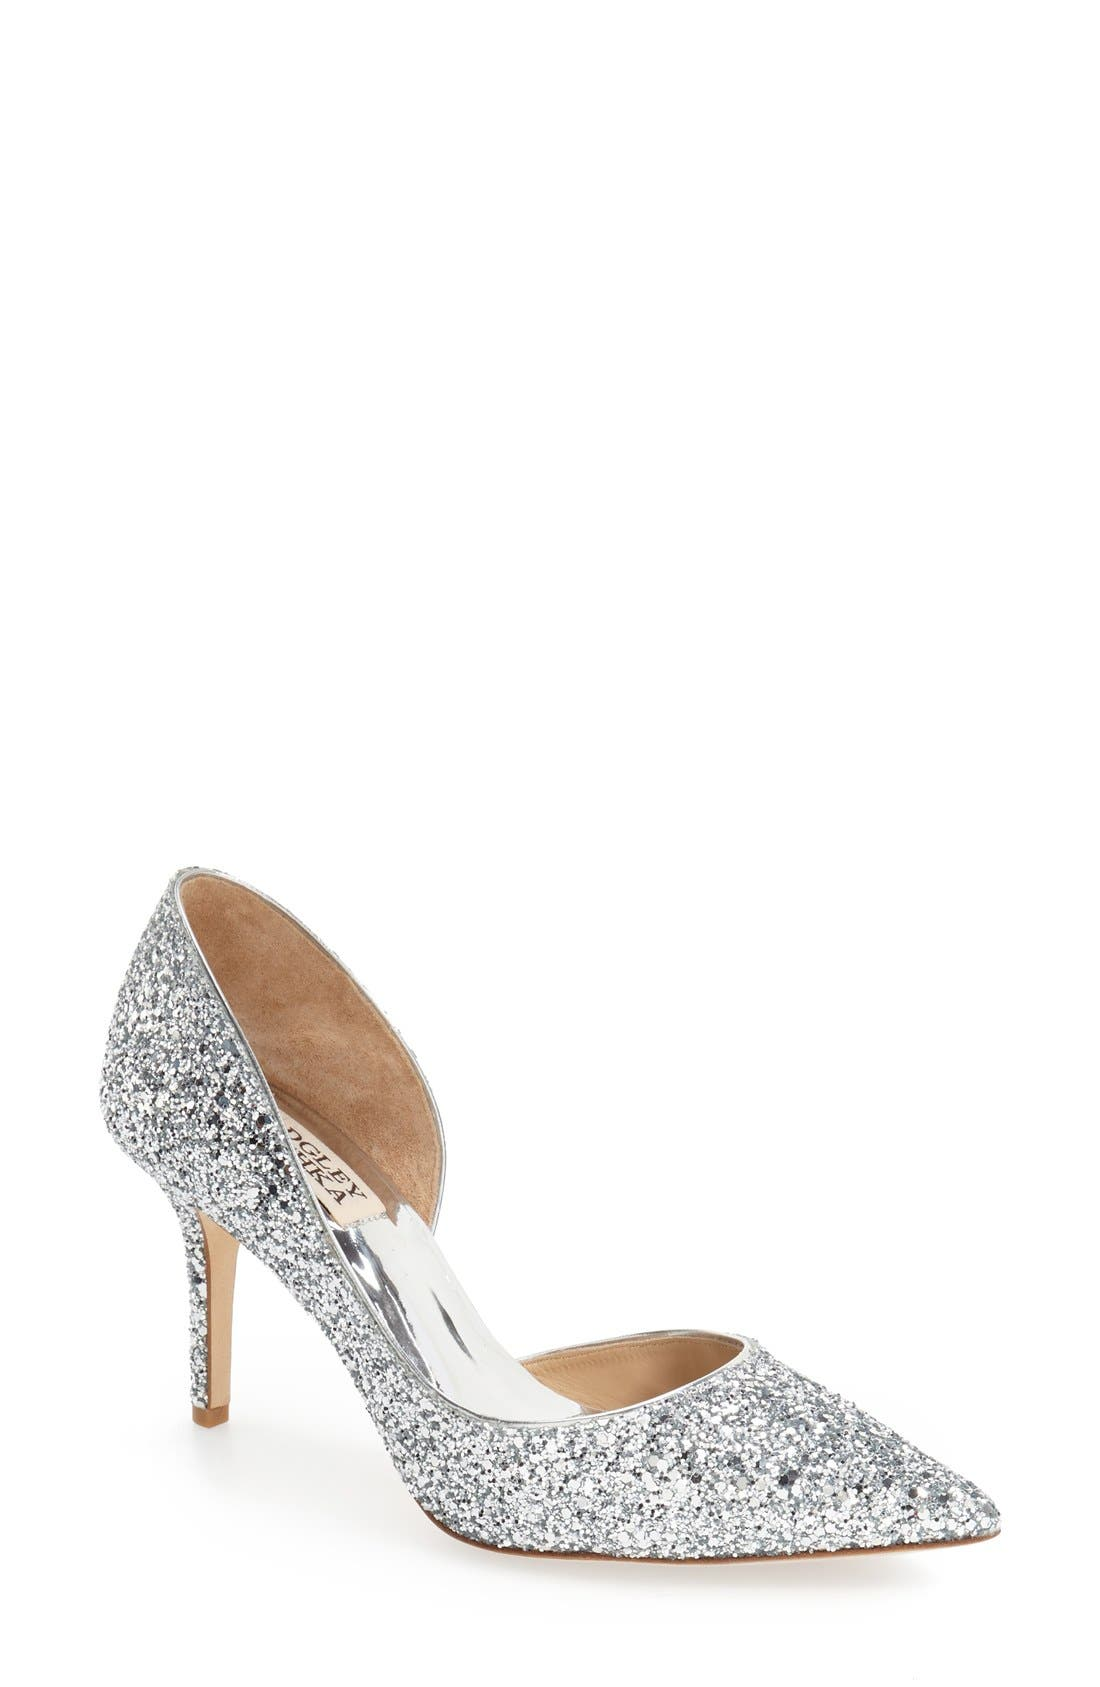 Main Image - Badgley Mischka 'Daisy' Embellished Pointy Toe Pump (Women)